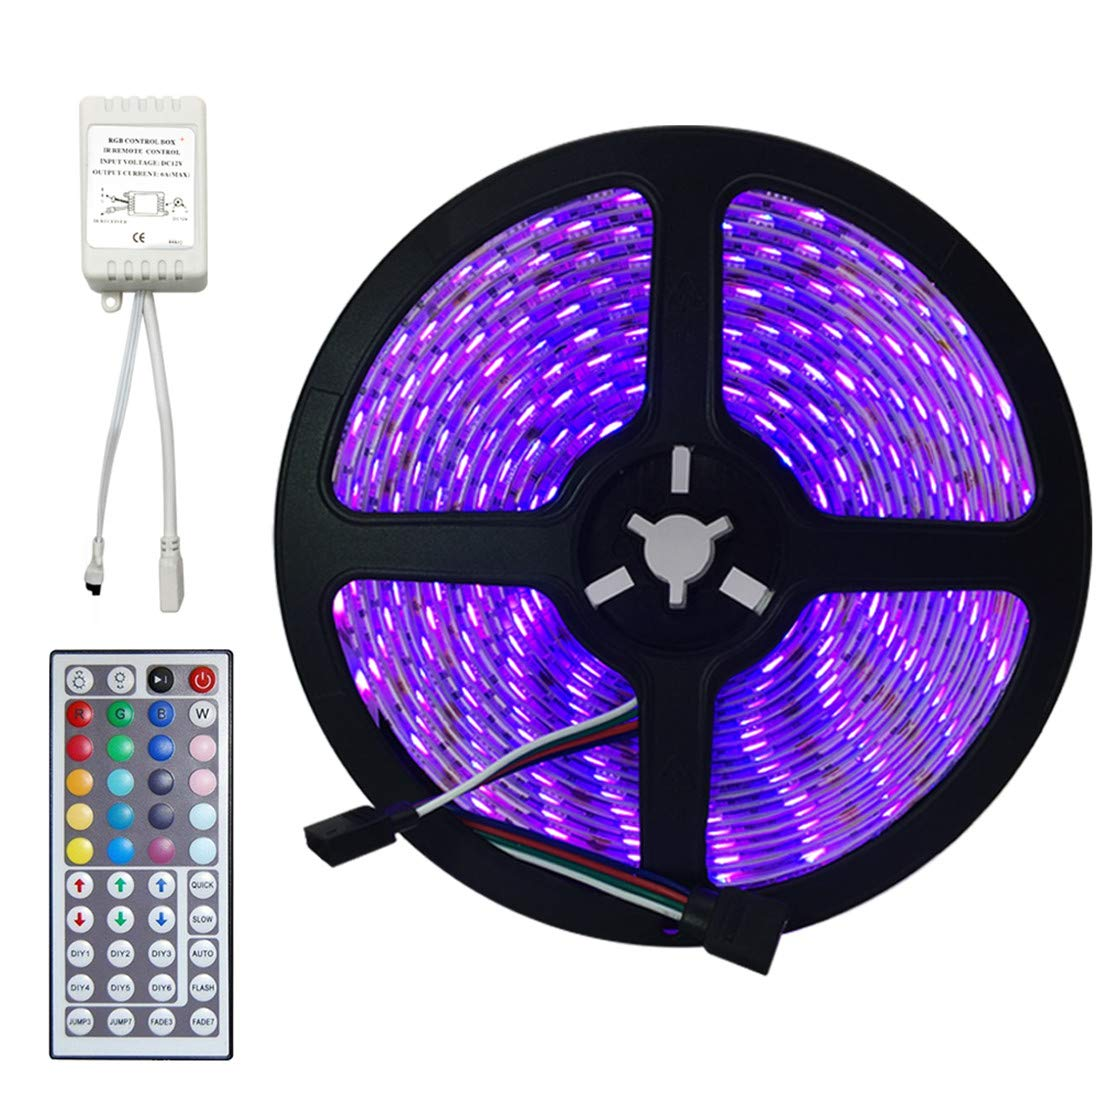 EconoLed 5M 16.4Ft RGB 5050SMD 300LED Waterproof Flexible LED Light Strip lamp + 44Key IR Remote (Supports Max 5 meters of RGB LED flexible strips) US Seller